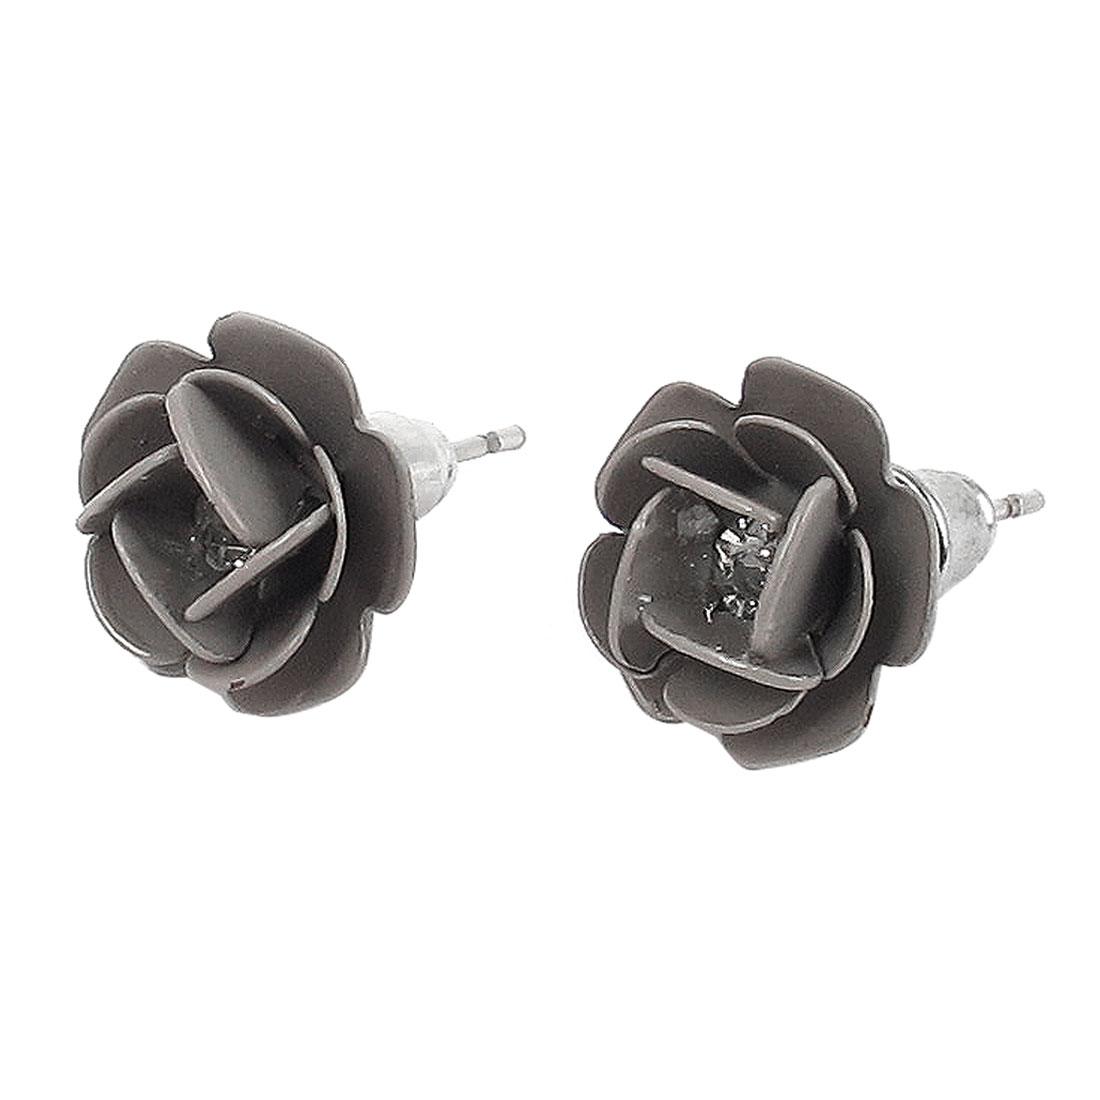 Women Metal Flower Shape Faux Crystal Inlaid Pierced Stud Pin Ear Nail Earrings Earbobs Silver Tone Gray 2cm Length Pair